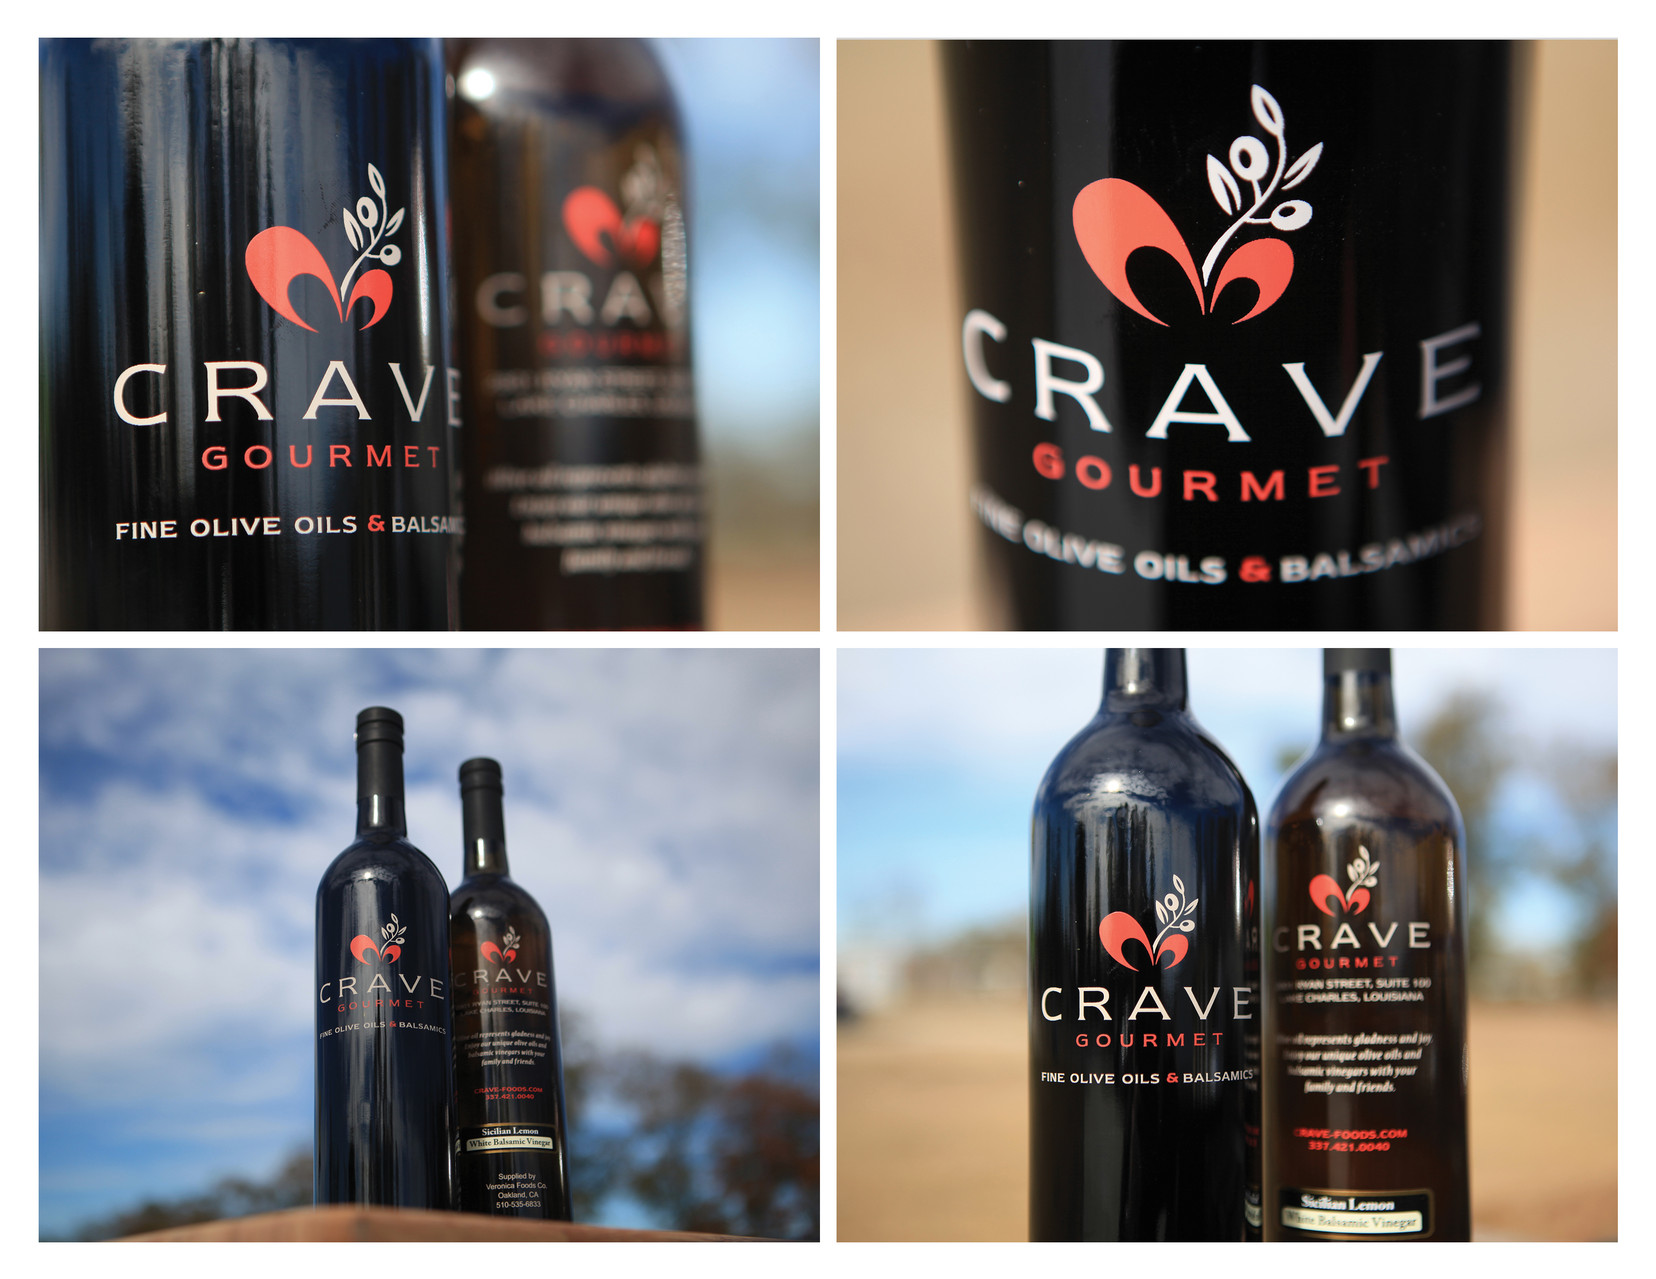 Crave Oil & Vinegar Bottle - Bronze ADDY©